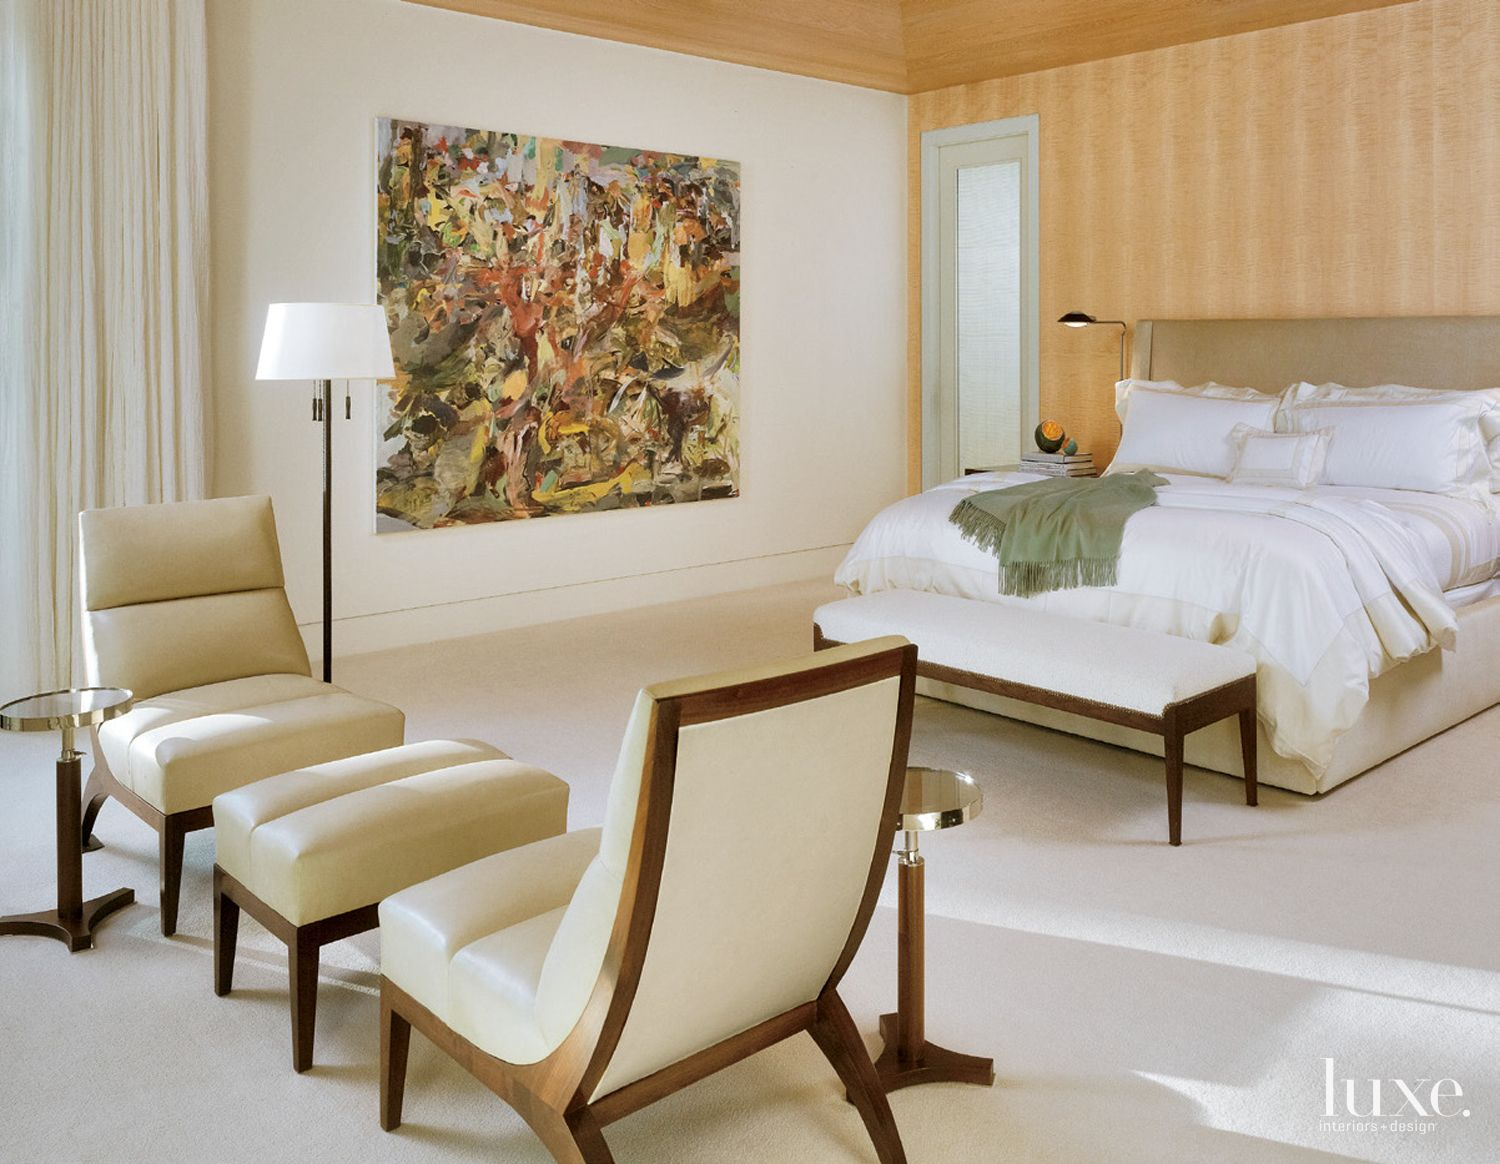 Contemporary White Bedroom with Artwork on Wall